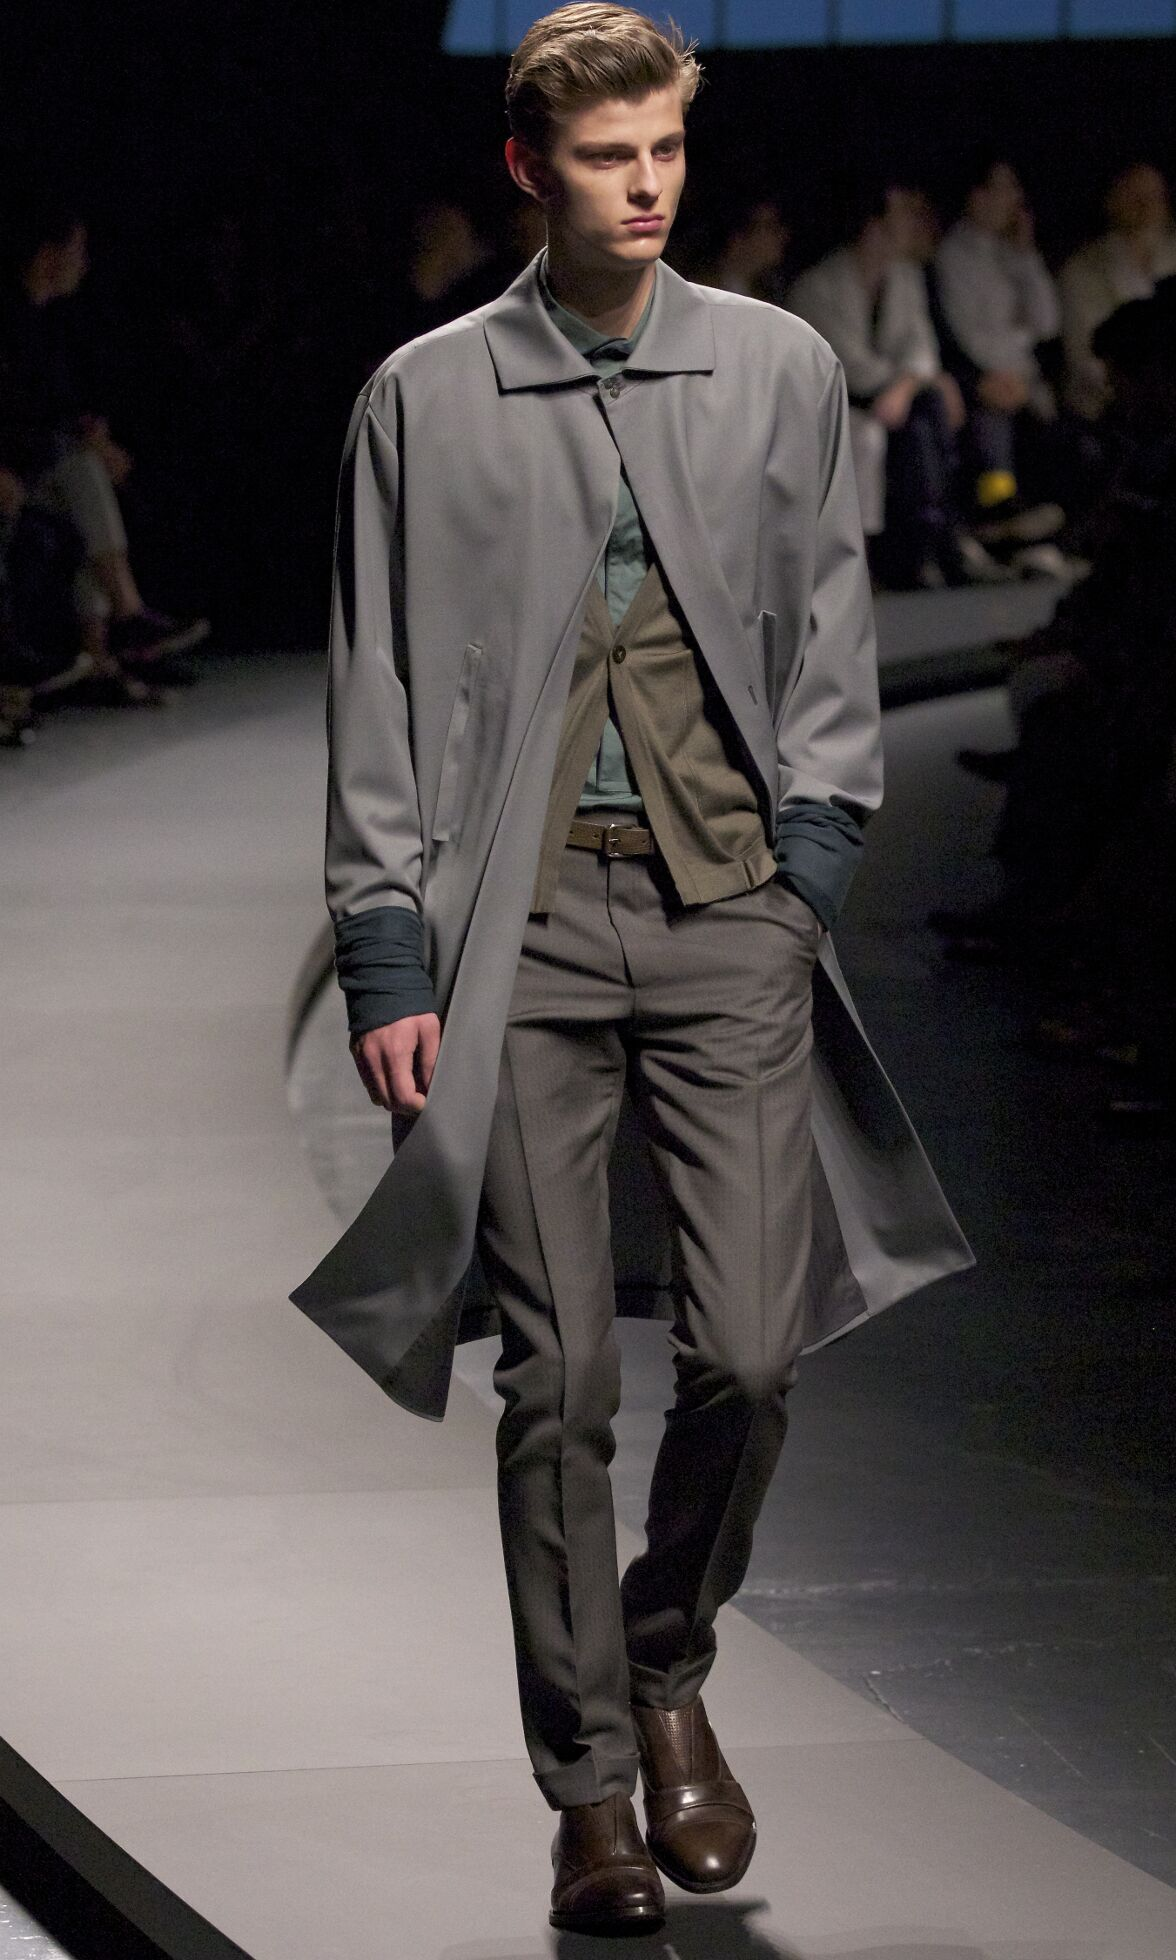 Summer 2014 Fashion Show Ermenegildo Zegna